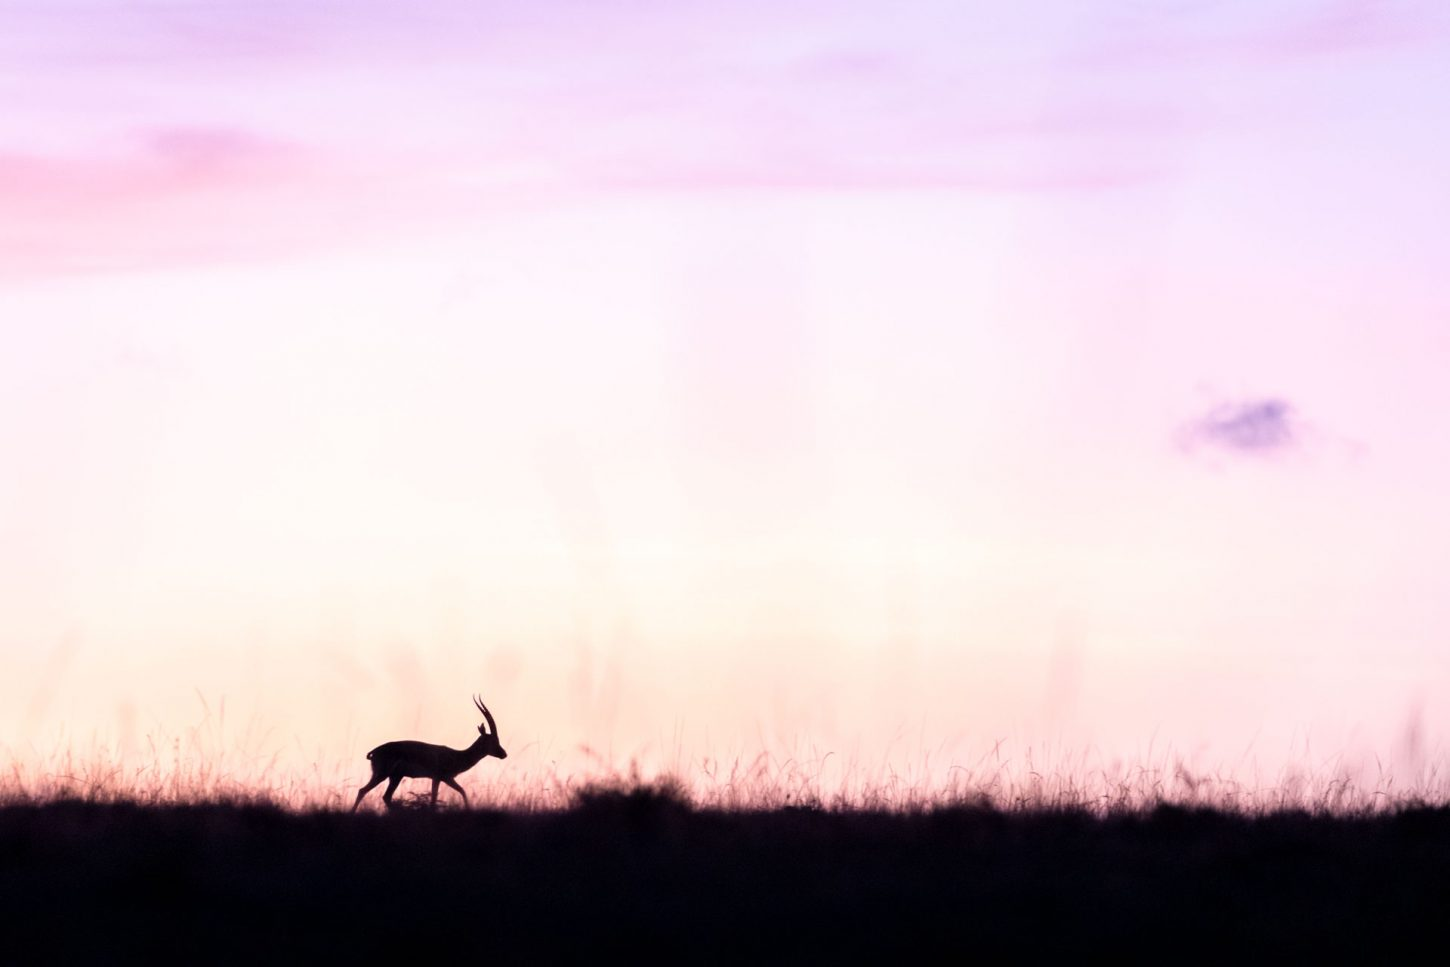 Silhouette of antelope against pink sky